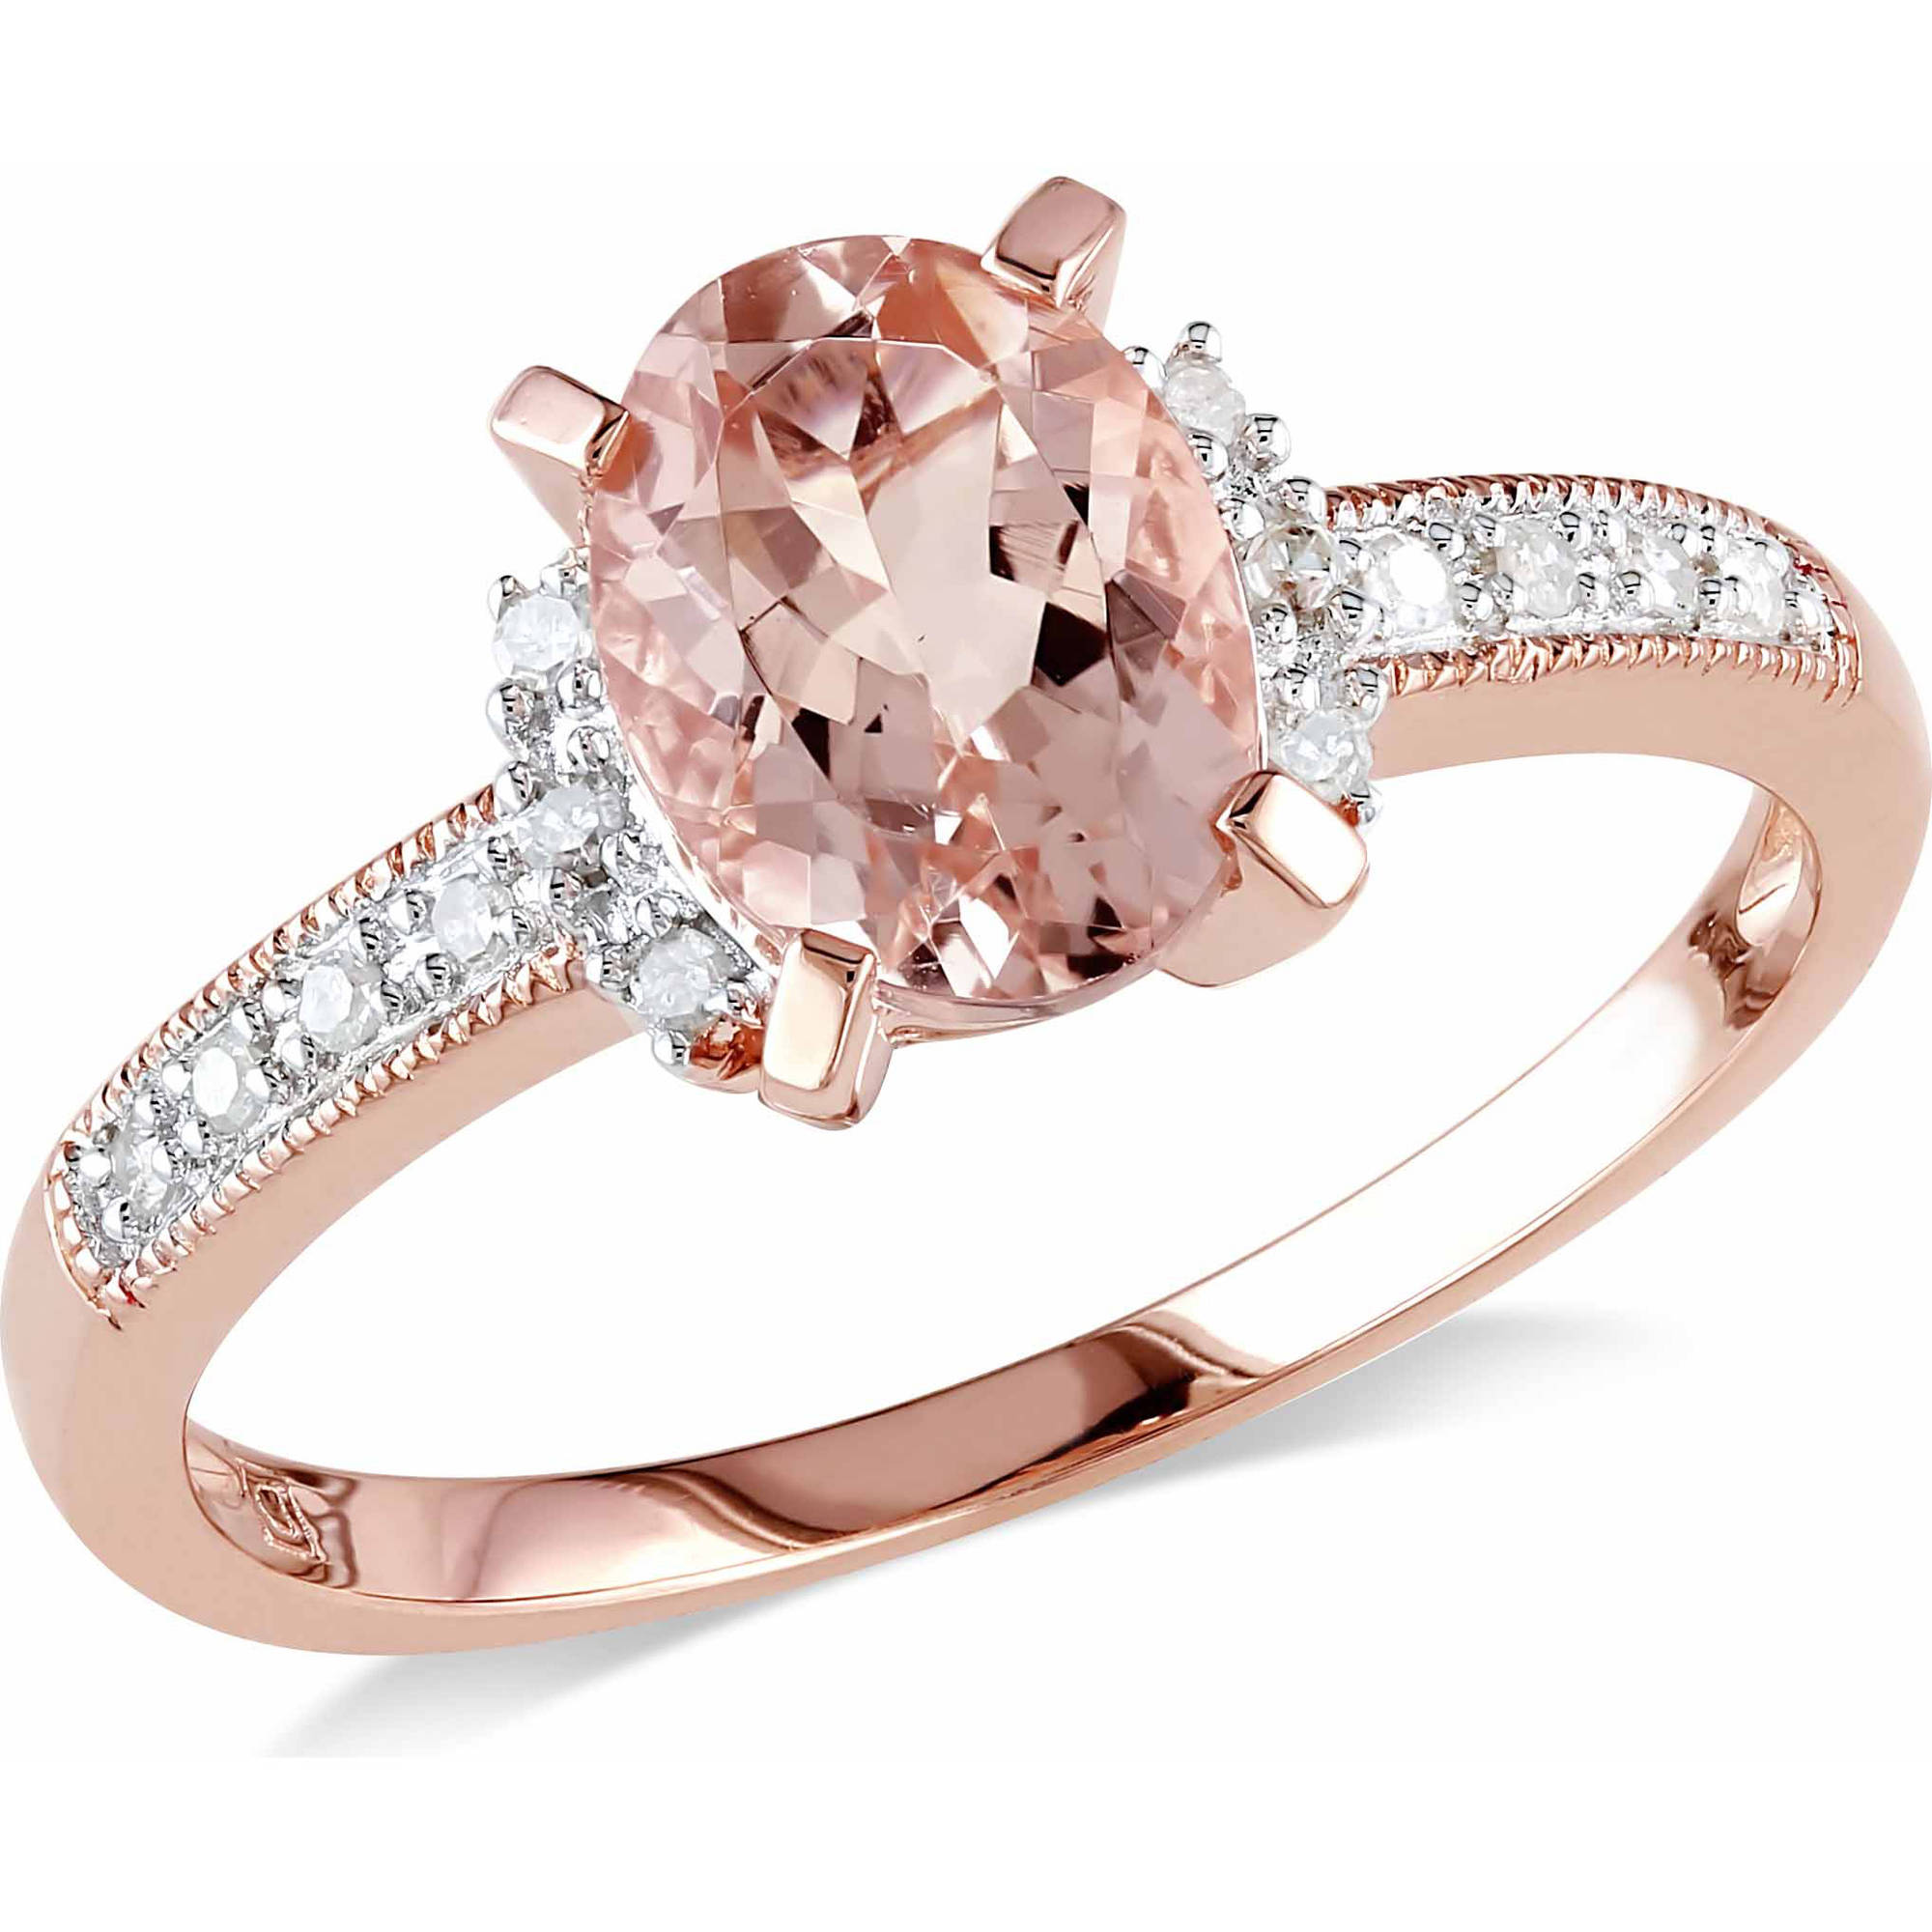 ring wedding morganite diamond moss levian jewellers gold product rose rings ben levianr